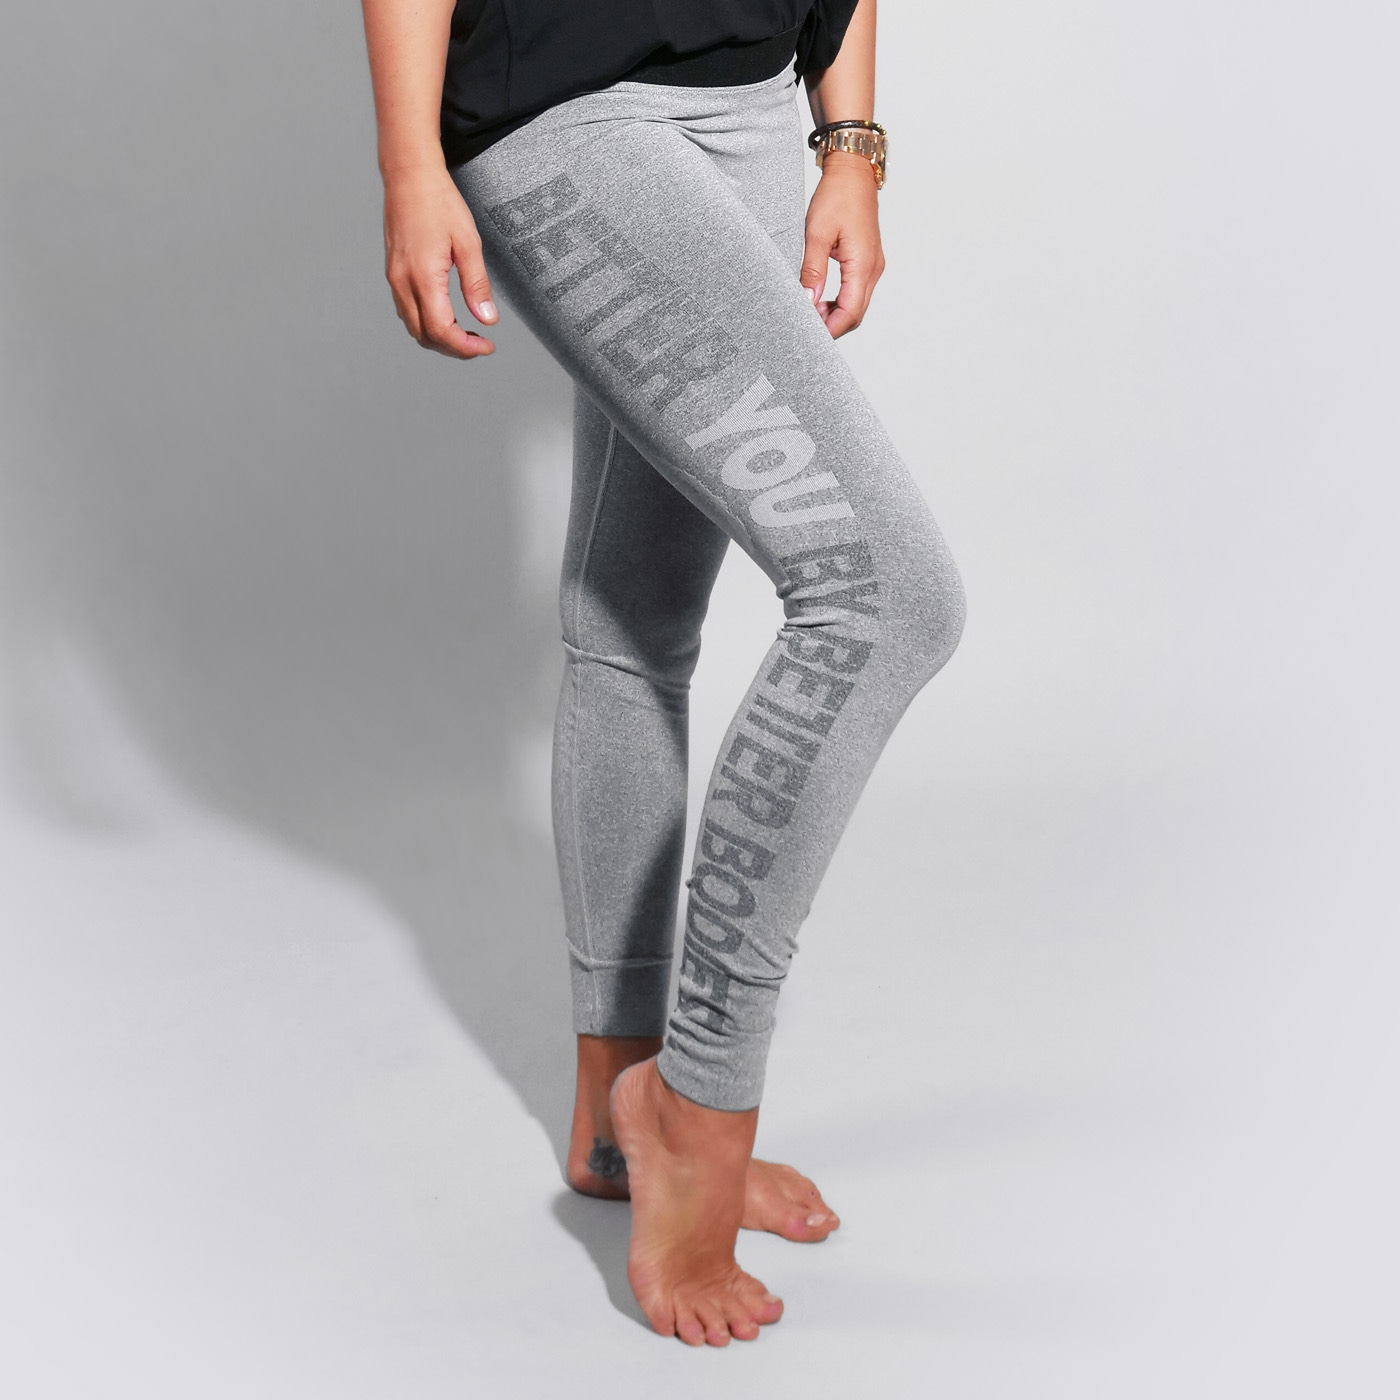 BY BB Tights Grey Melange